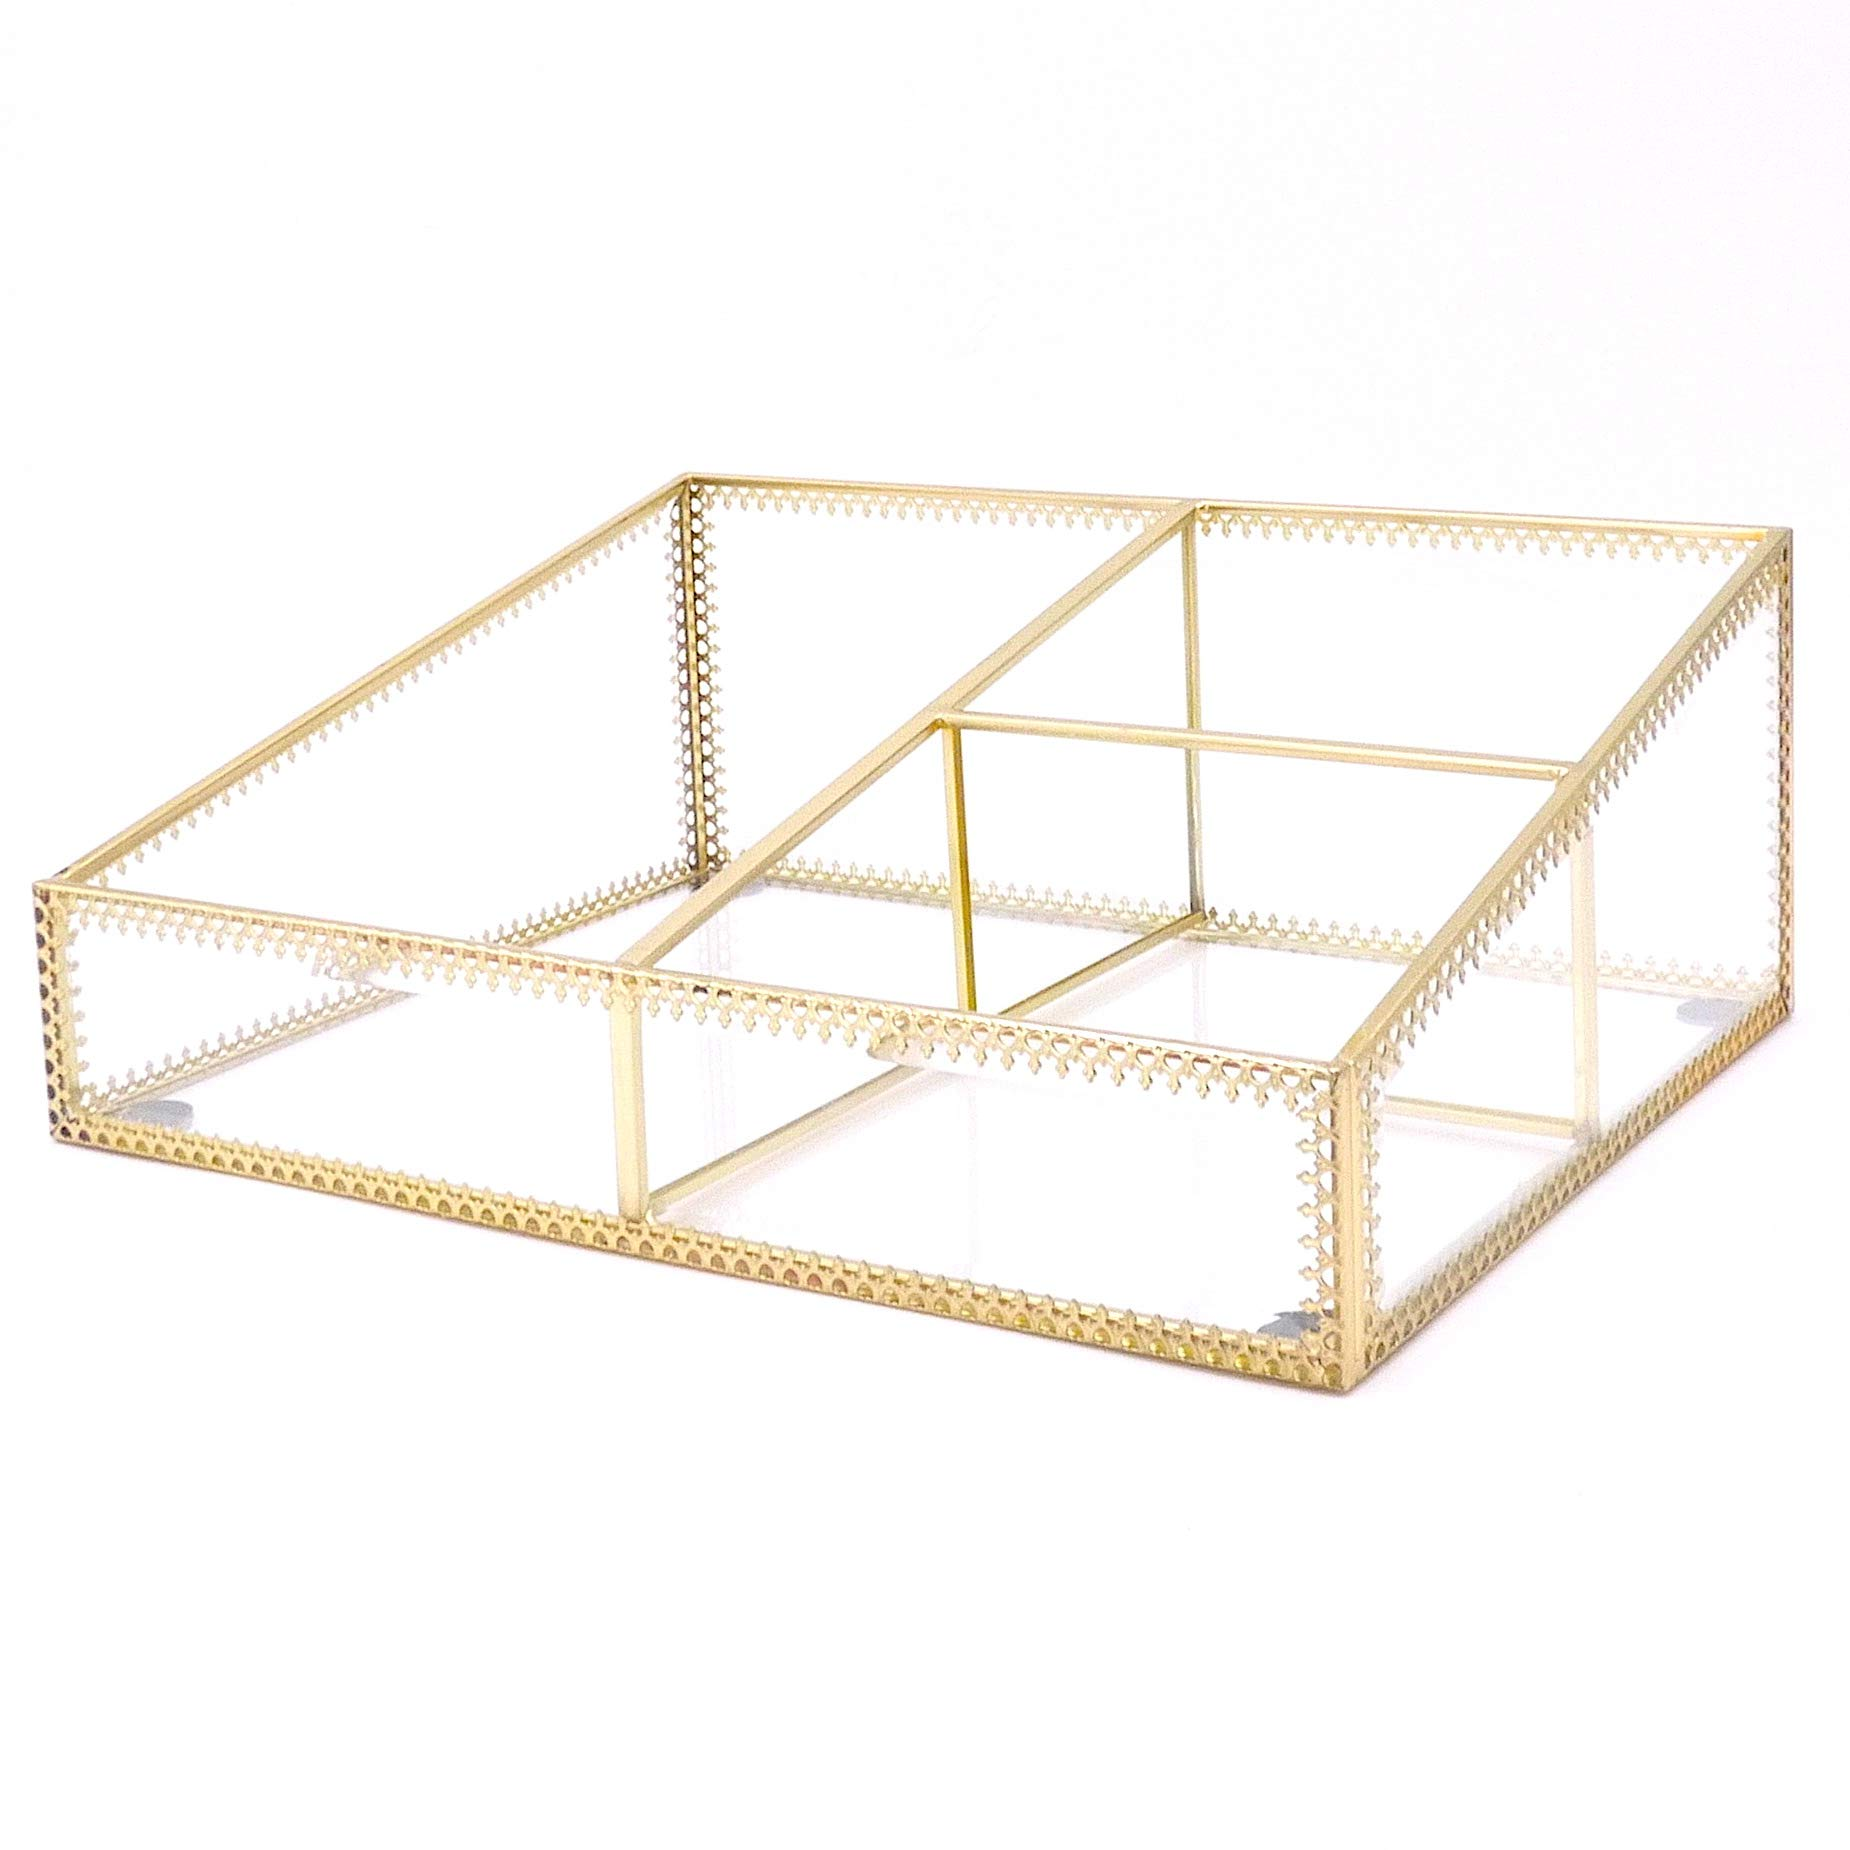 JC MAN Glass Vanity Tray, Gold Makeup Organizer, Perfume Storage, Cosmetic Products Display, Gold Mirrored Vanity Tray